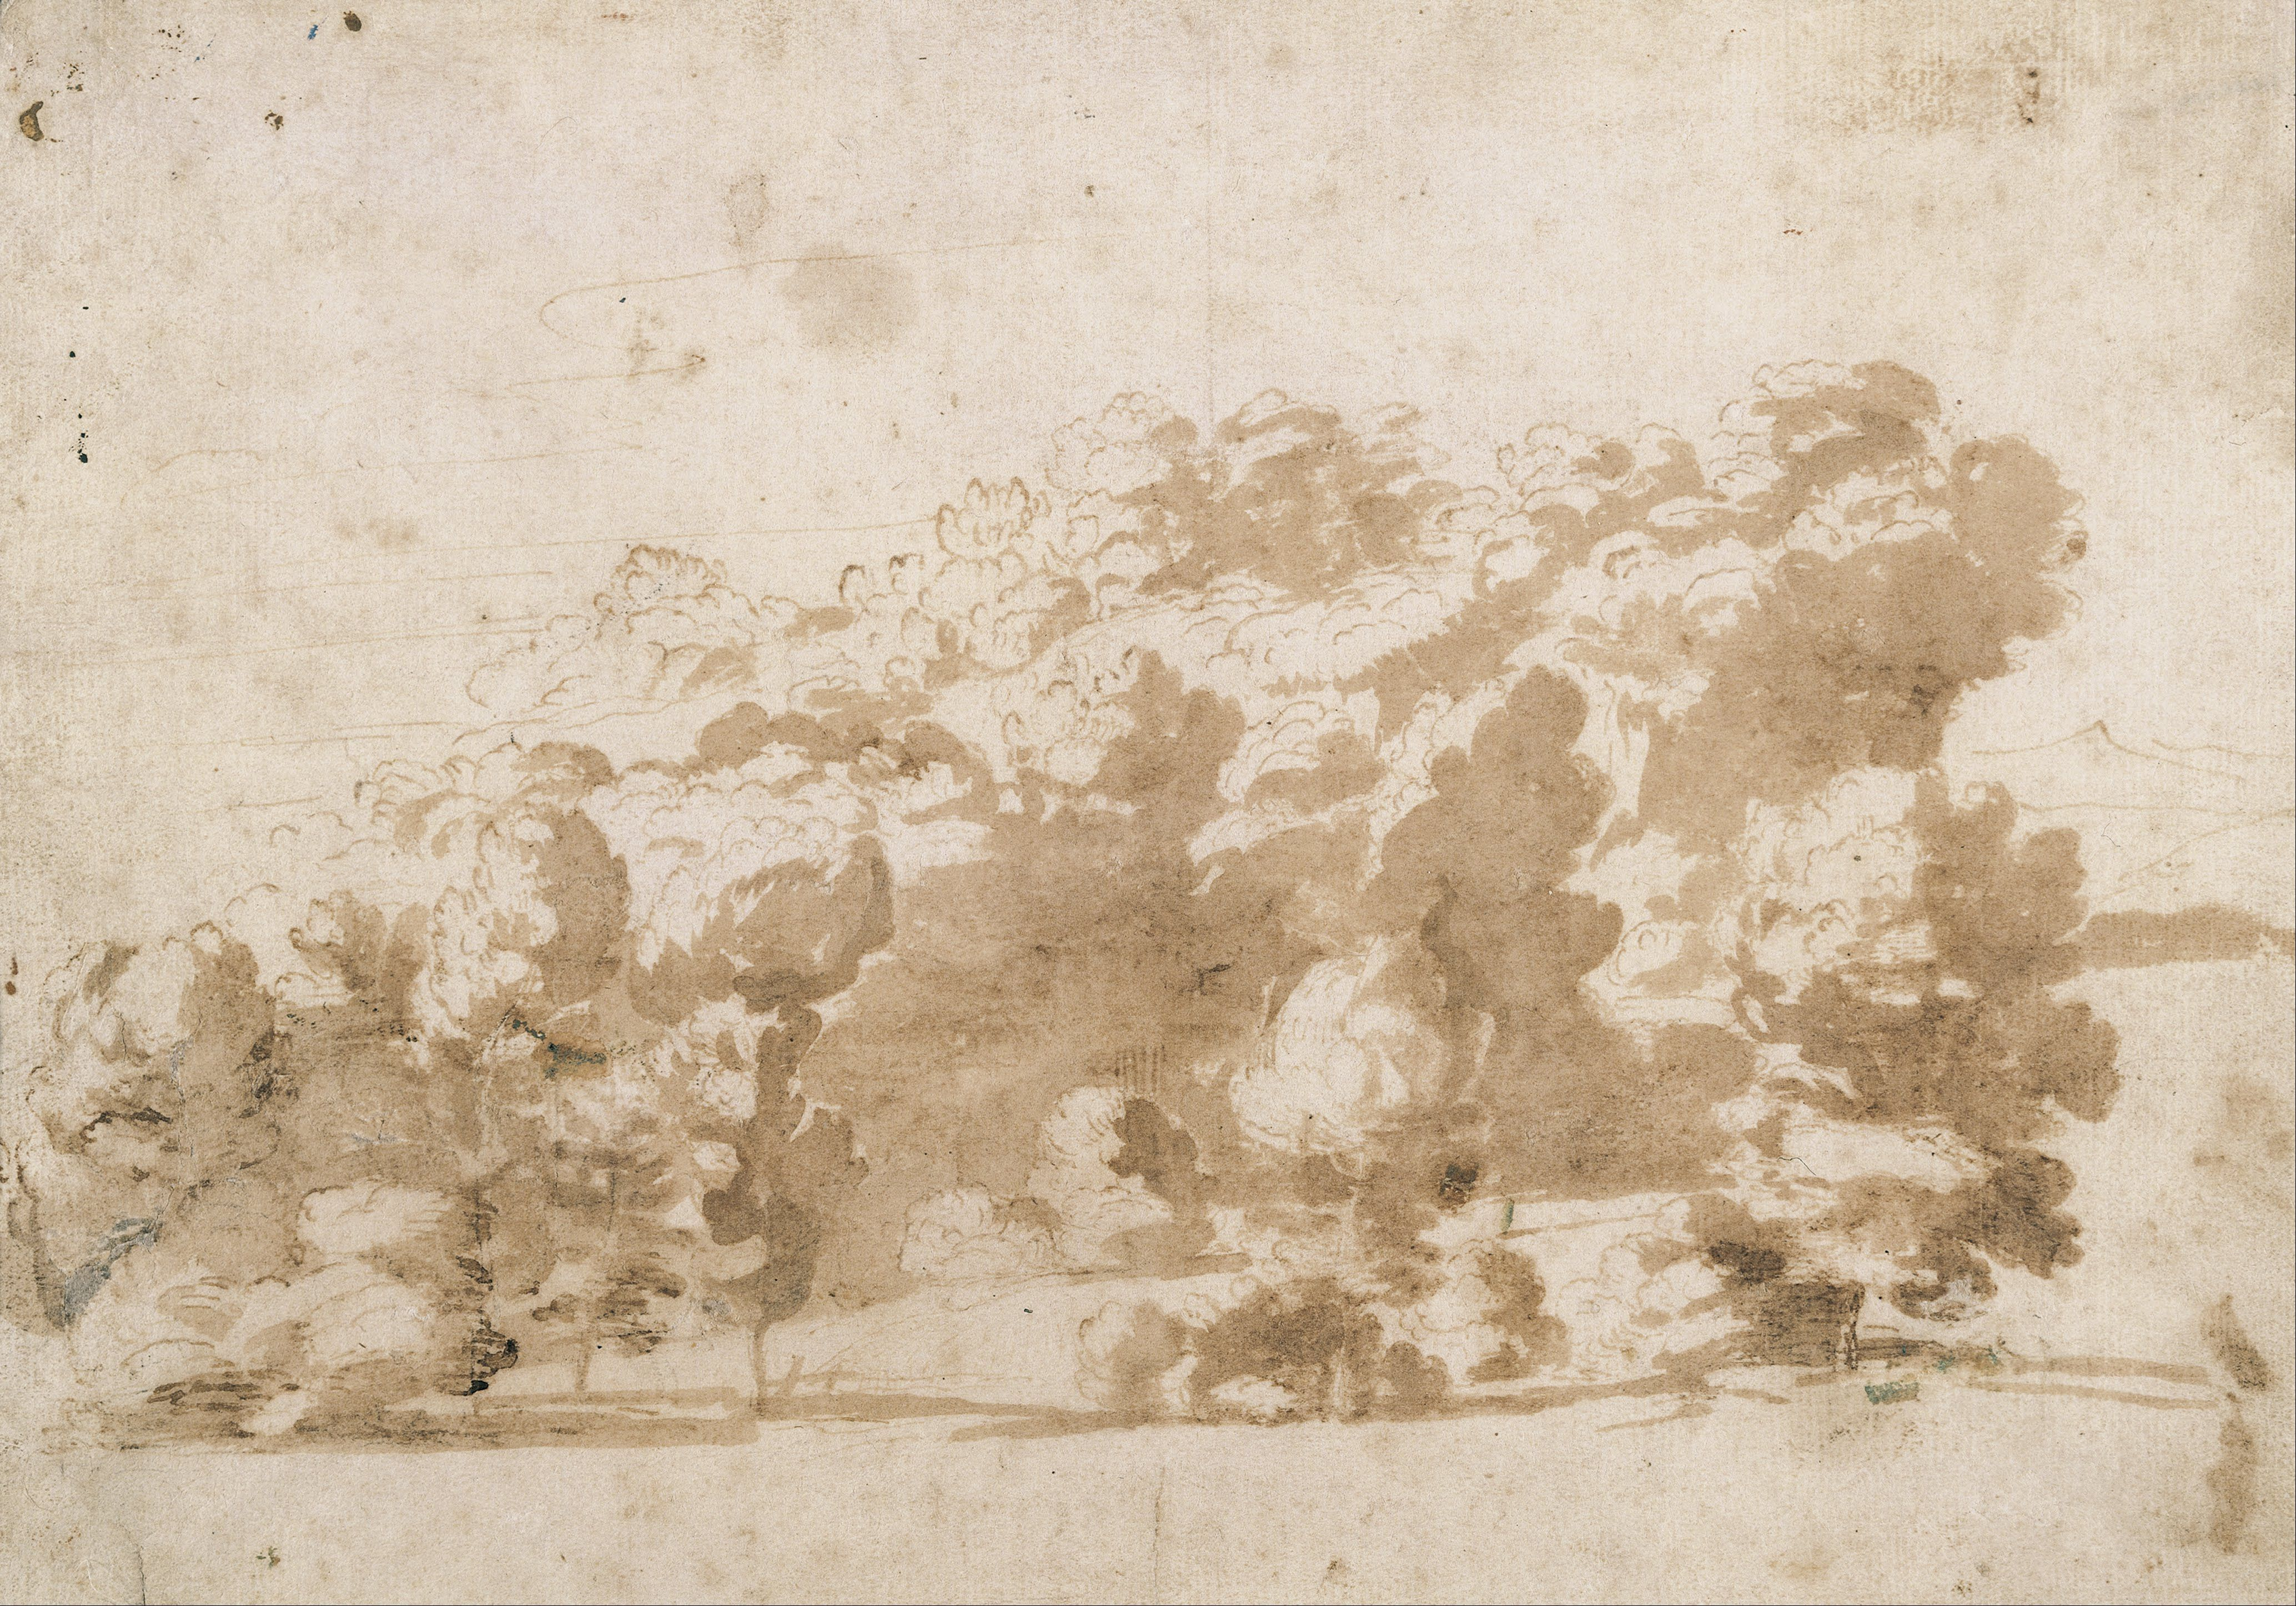 Anthony van Dyck, drawings - A wooded ridge